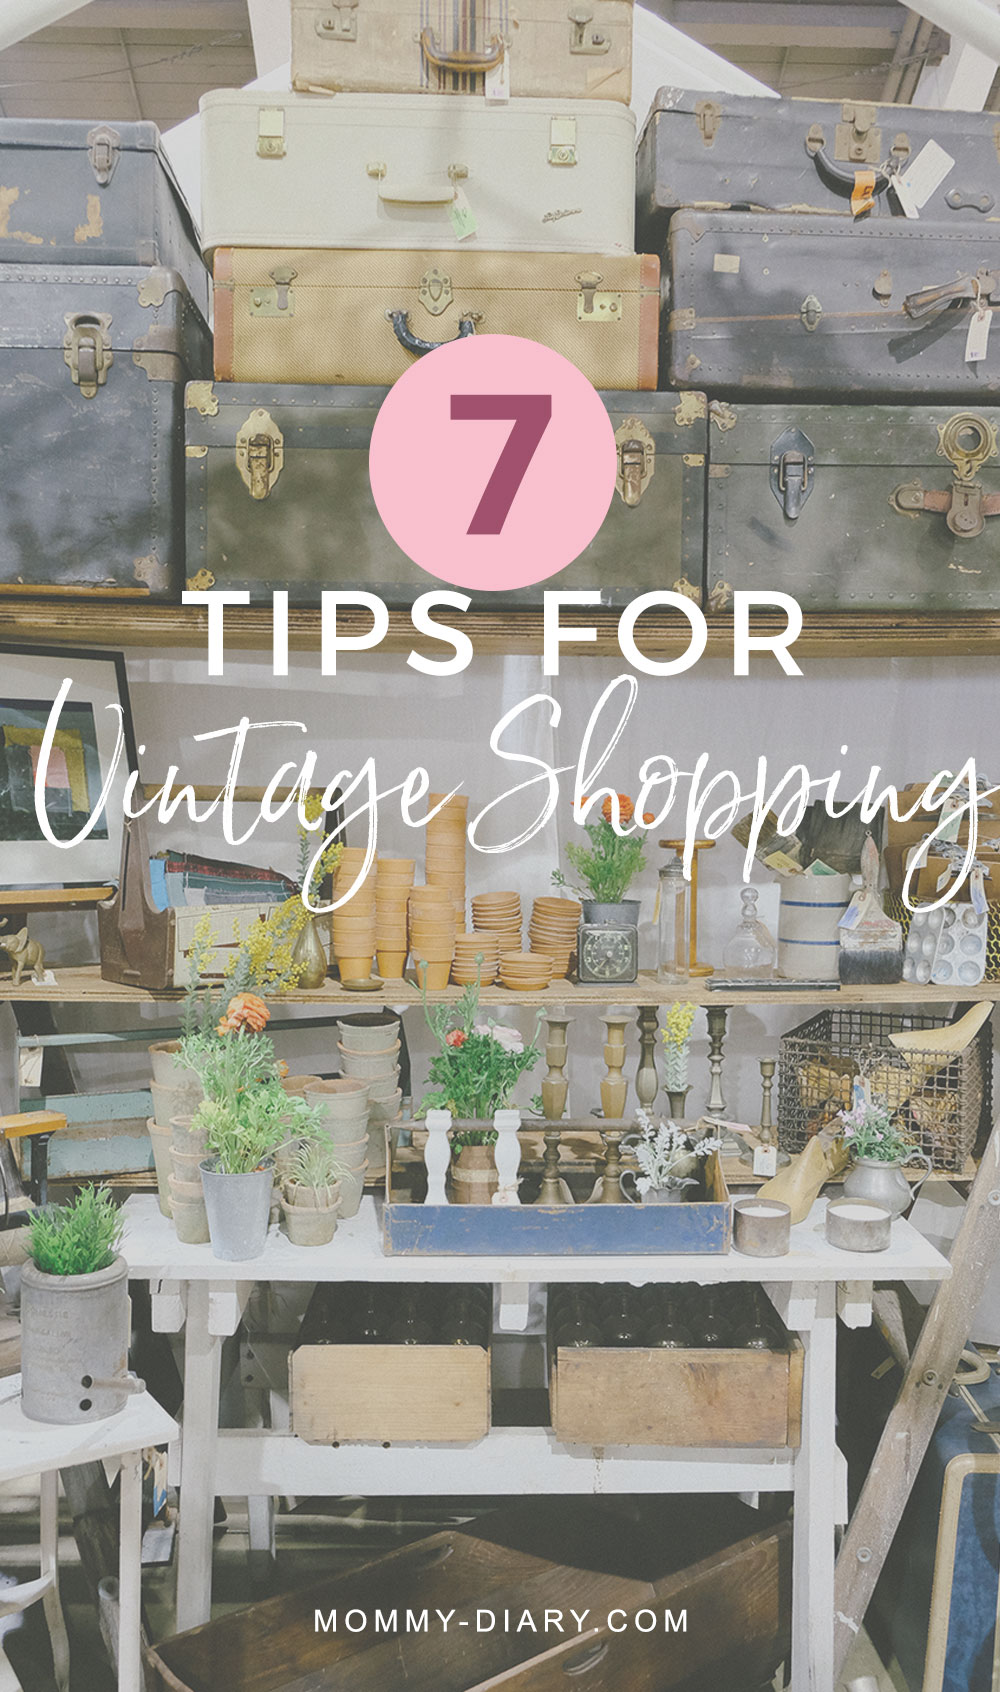 tips-for-vintage-shopping-pinterest